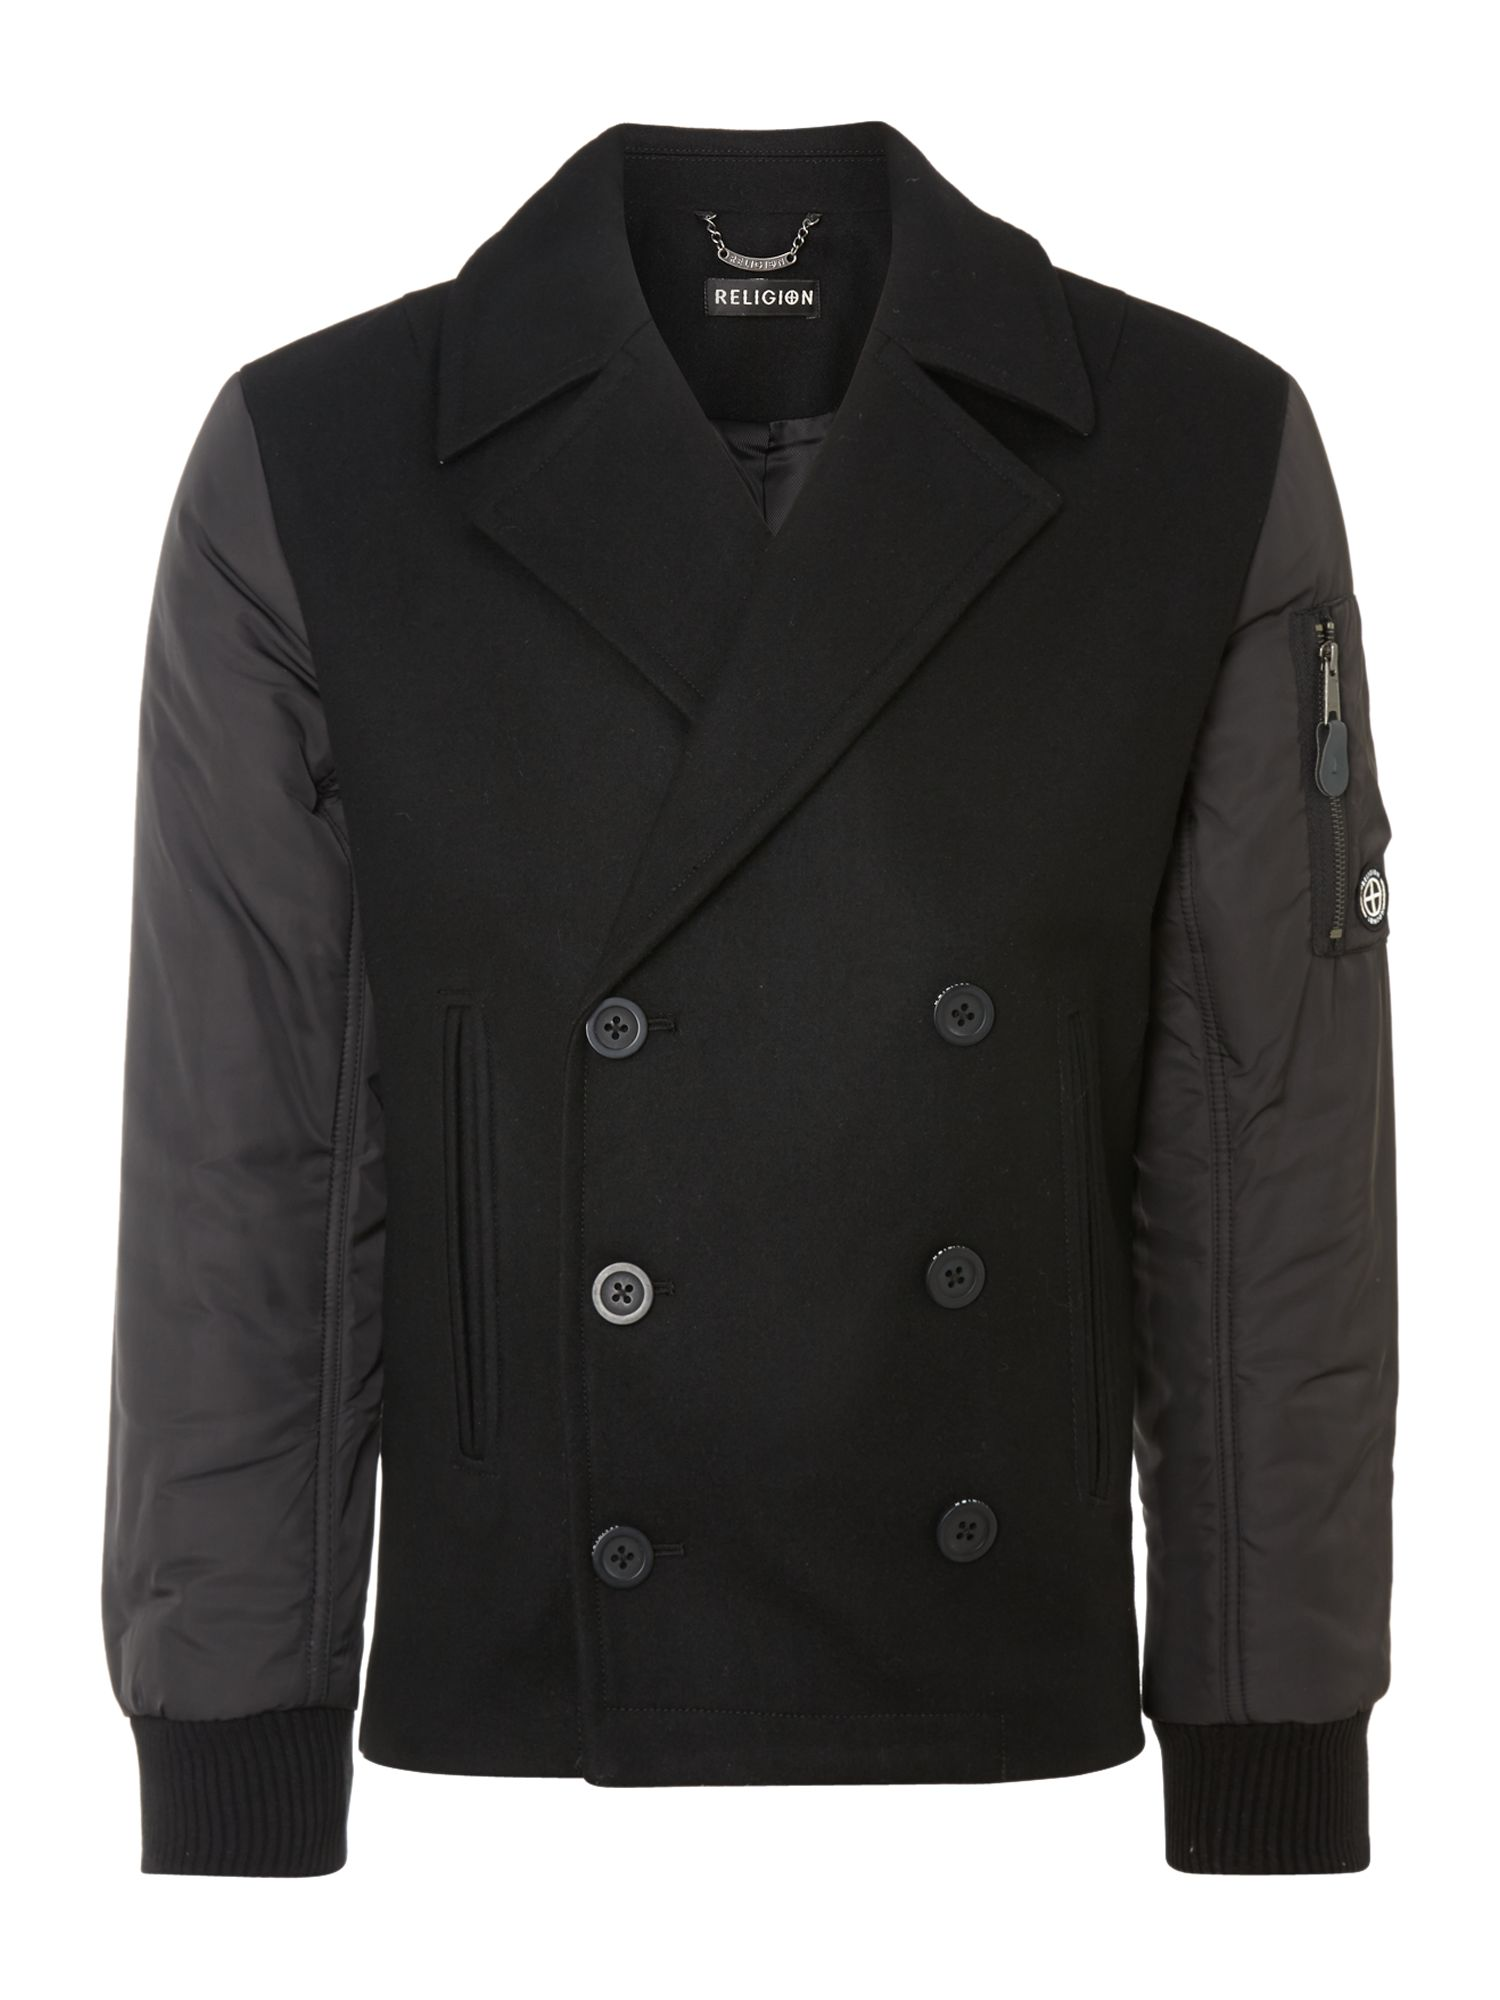 Two pocket panelled jacket